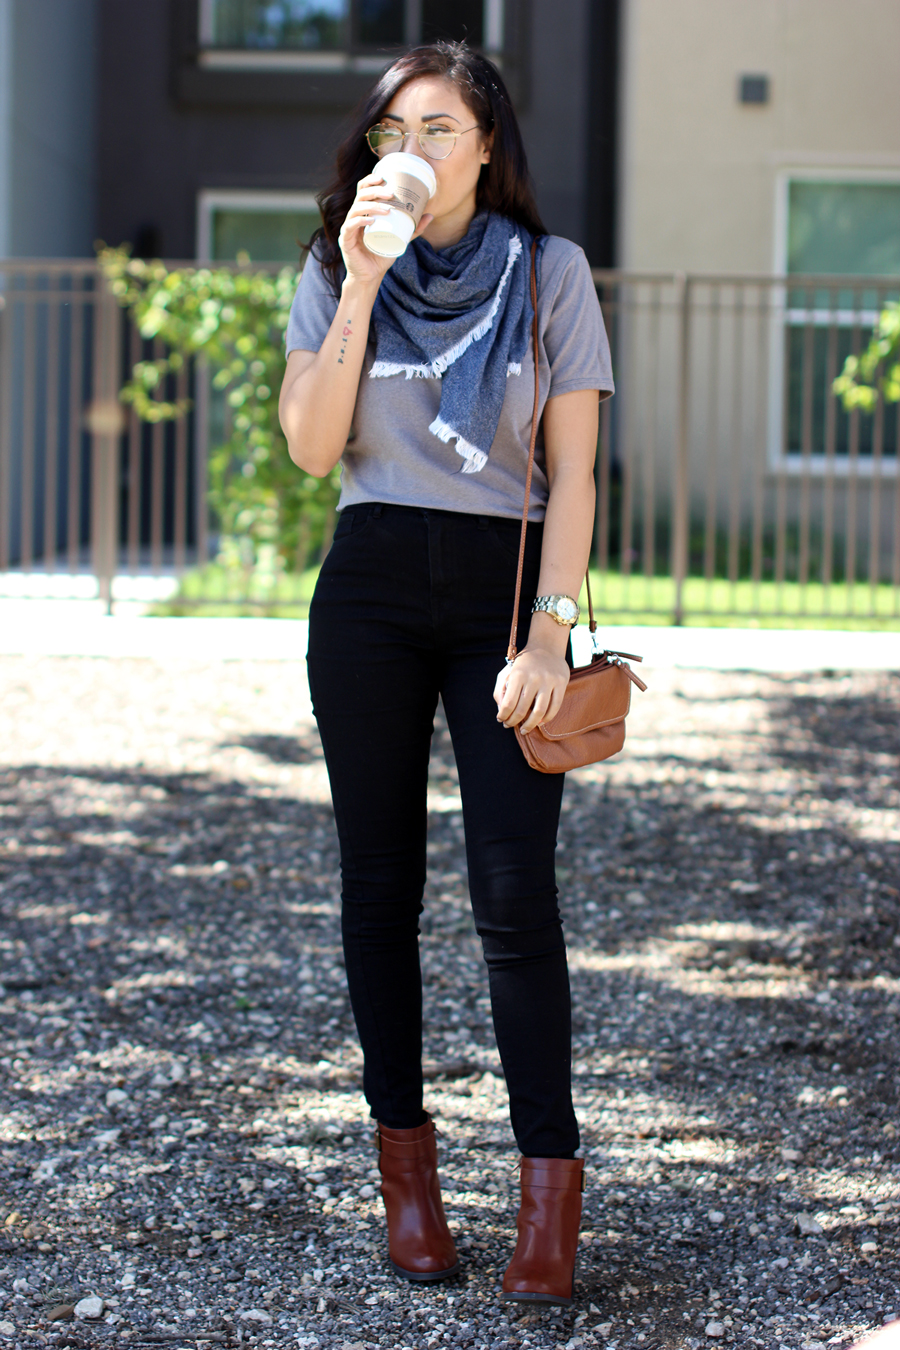 FIXIN-TO-THRILL-BANANA-REPUBLIC-TEE-CREW-NECK-CASUAL-TREND-FALL-OCTOBER-ATX-AUSTIN-STYLE-BLOG-FW15-TRENDY-CHIC-GLAM-TEXAS-6